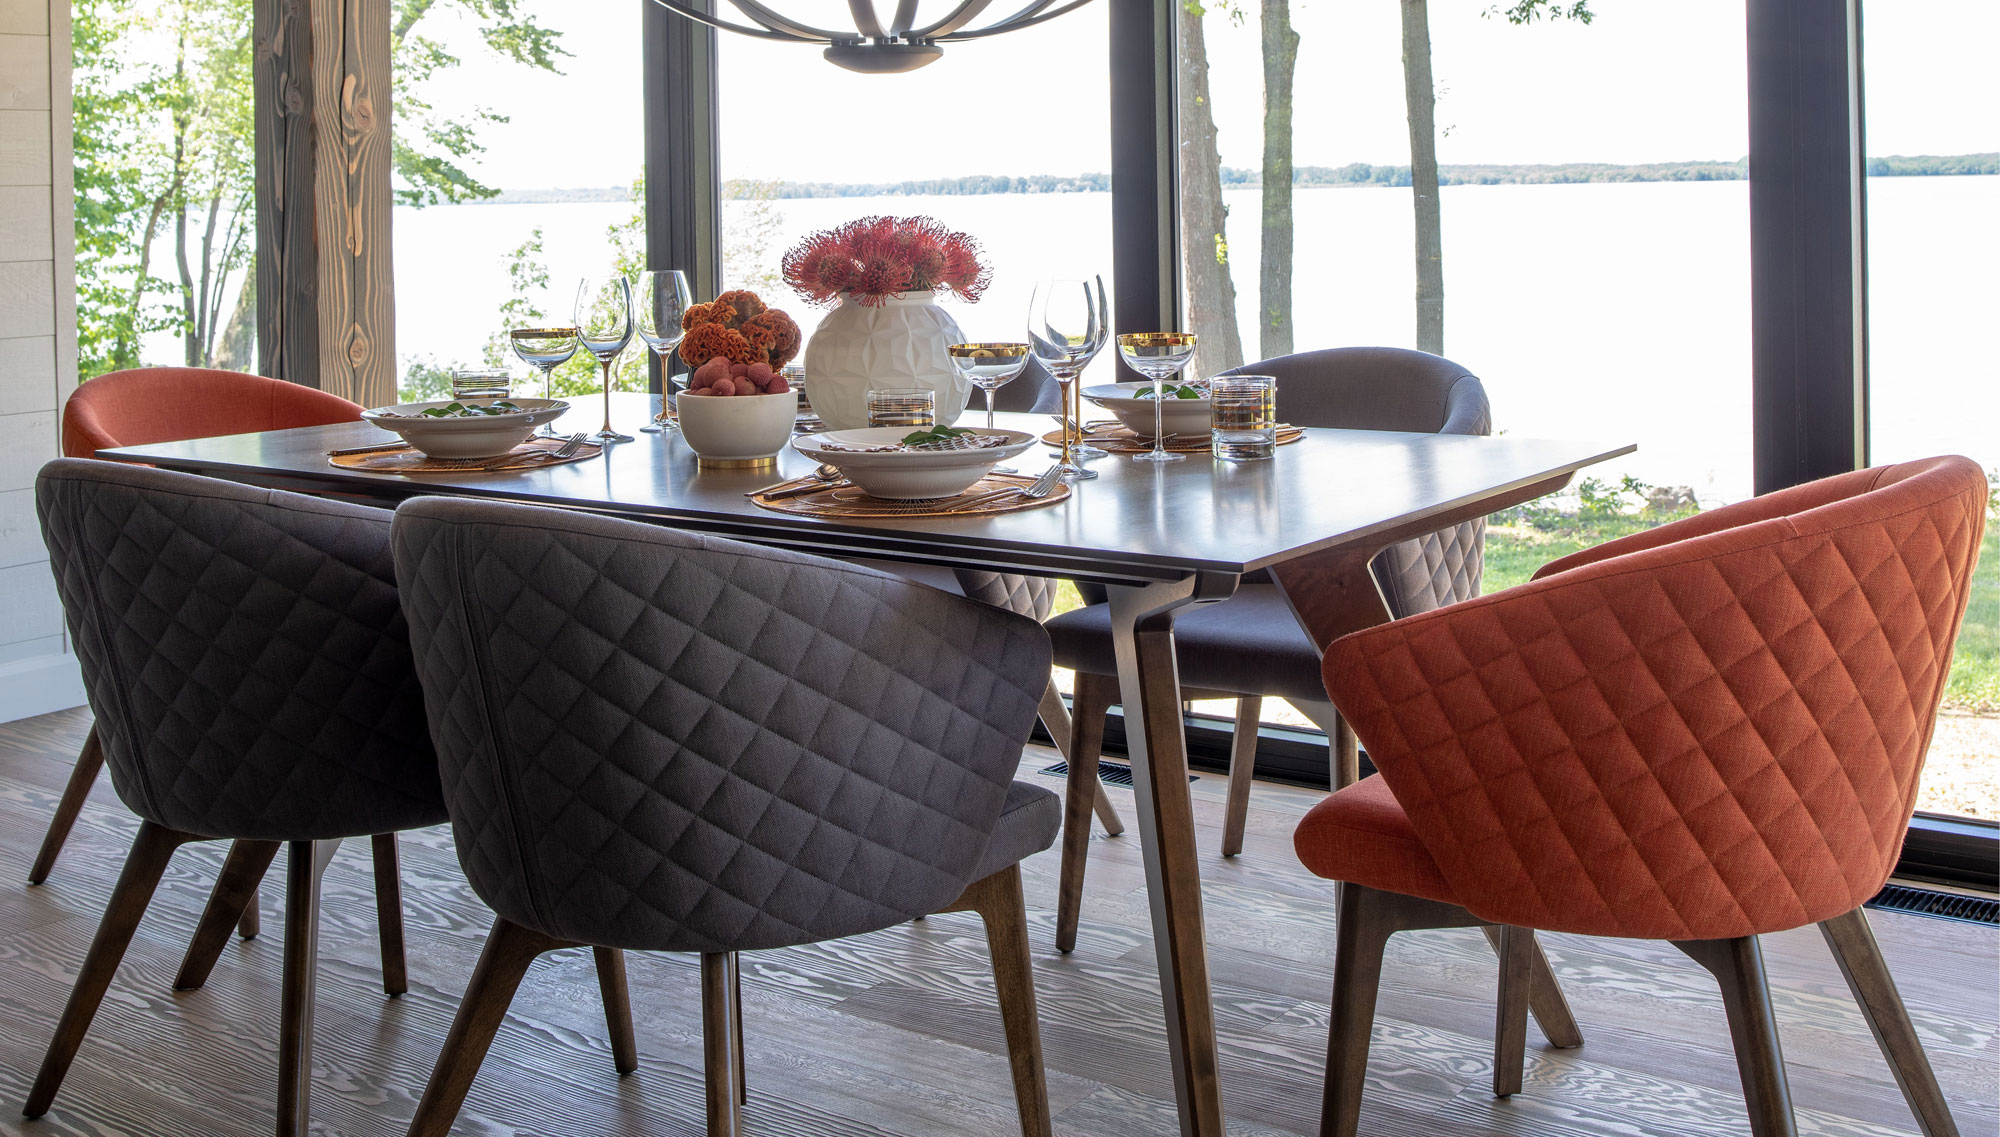 Handcrafted In North America – Kitchen And Dining Room – Canadel In Favorite Charcoal Transitional 6 Seating Rectangular Dining Tables (View 14 of 30)